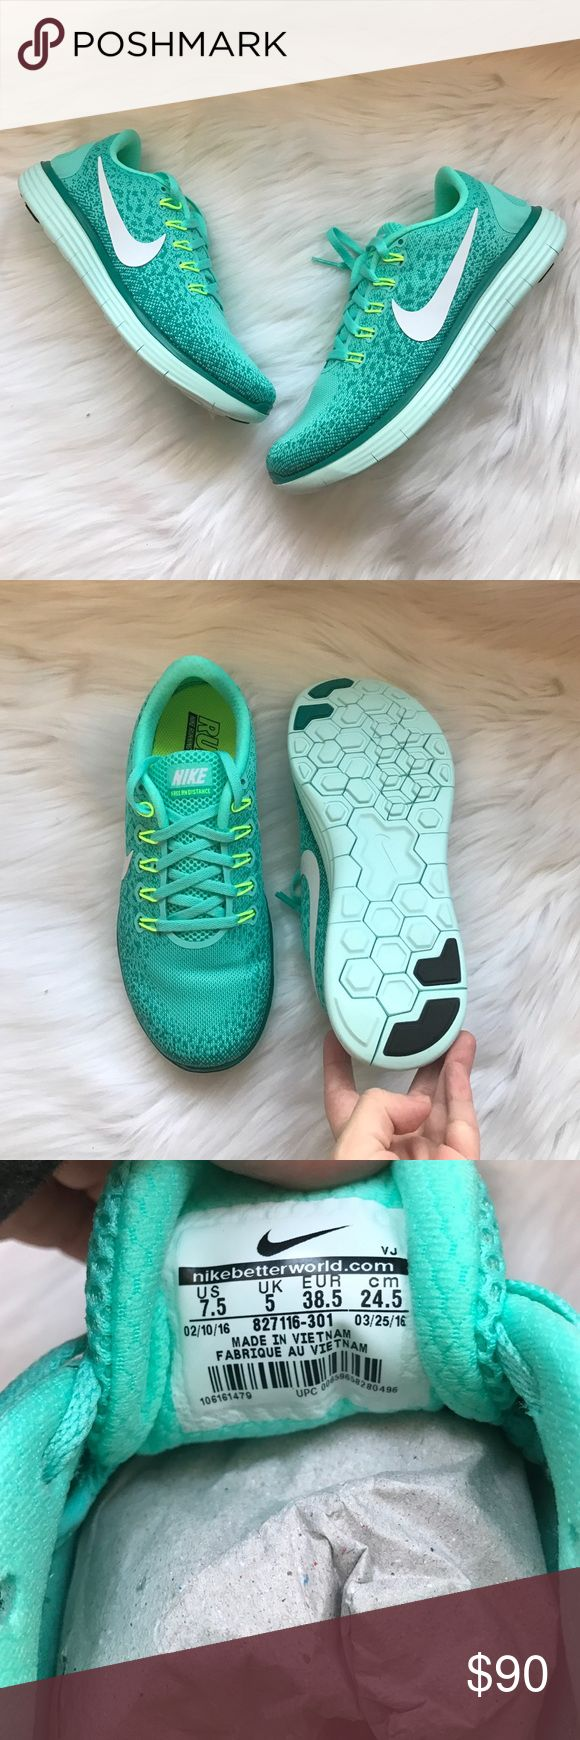 Nike Free Run Distance Sneakers Woman's Nike Free Run Distance Sneakers Style: 827116-301 Hyper turquoise, white, and jade New with original box Size 7.5 Nike Shoes Sneakers